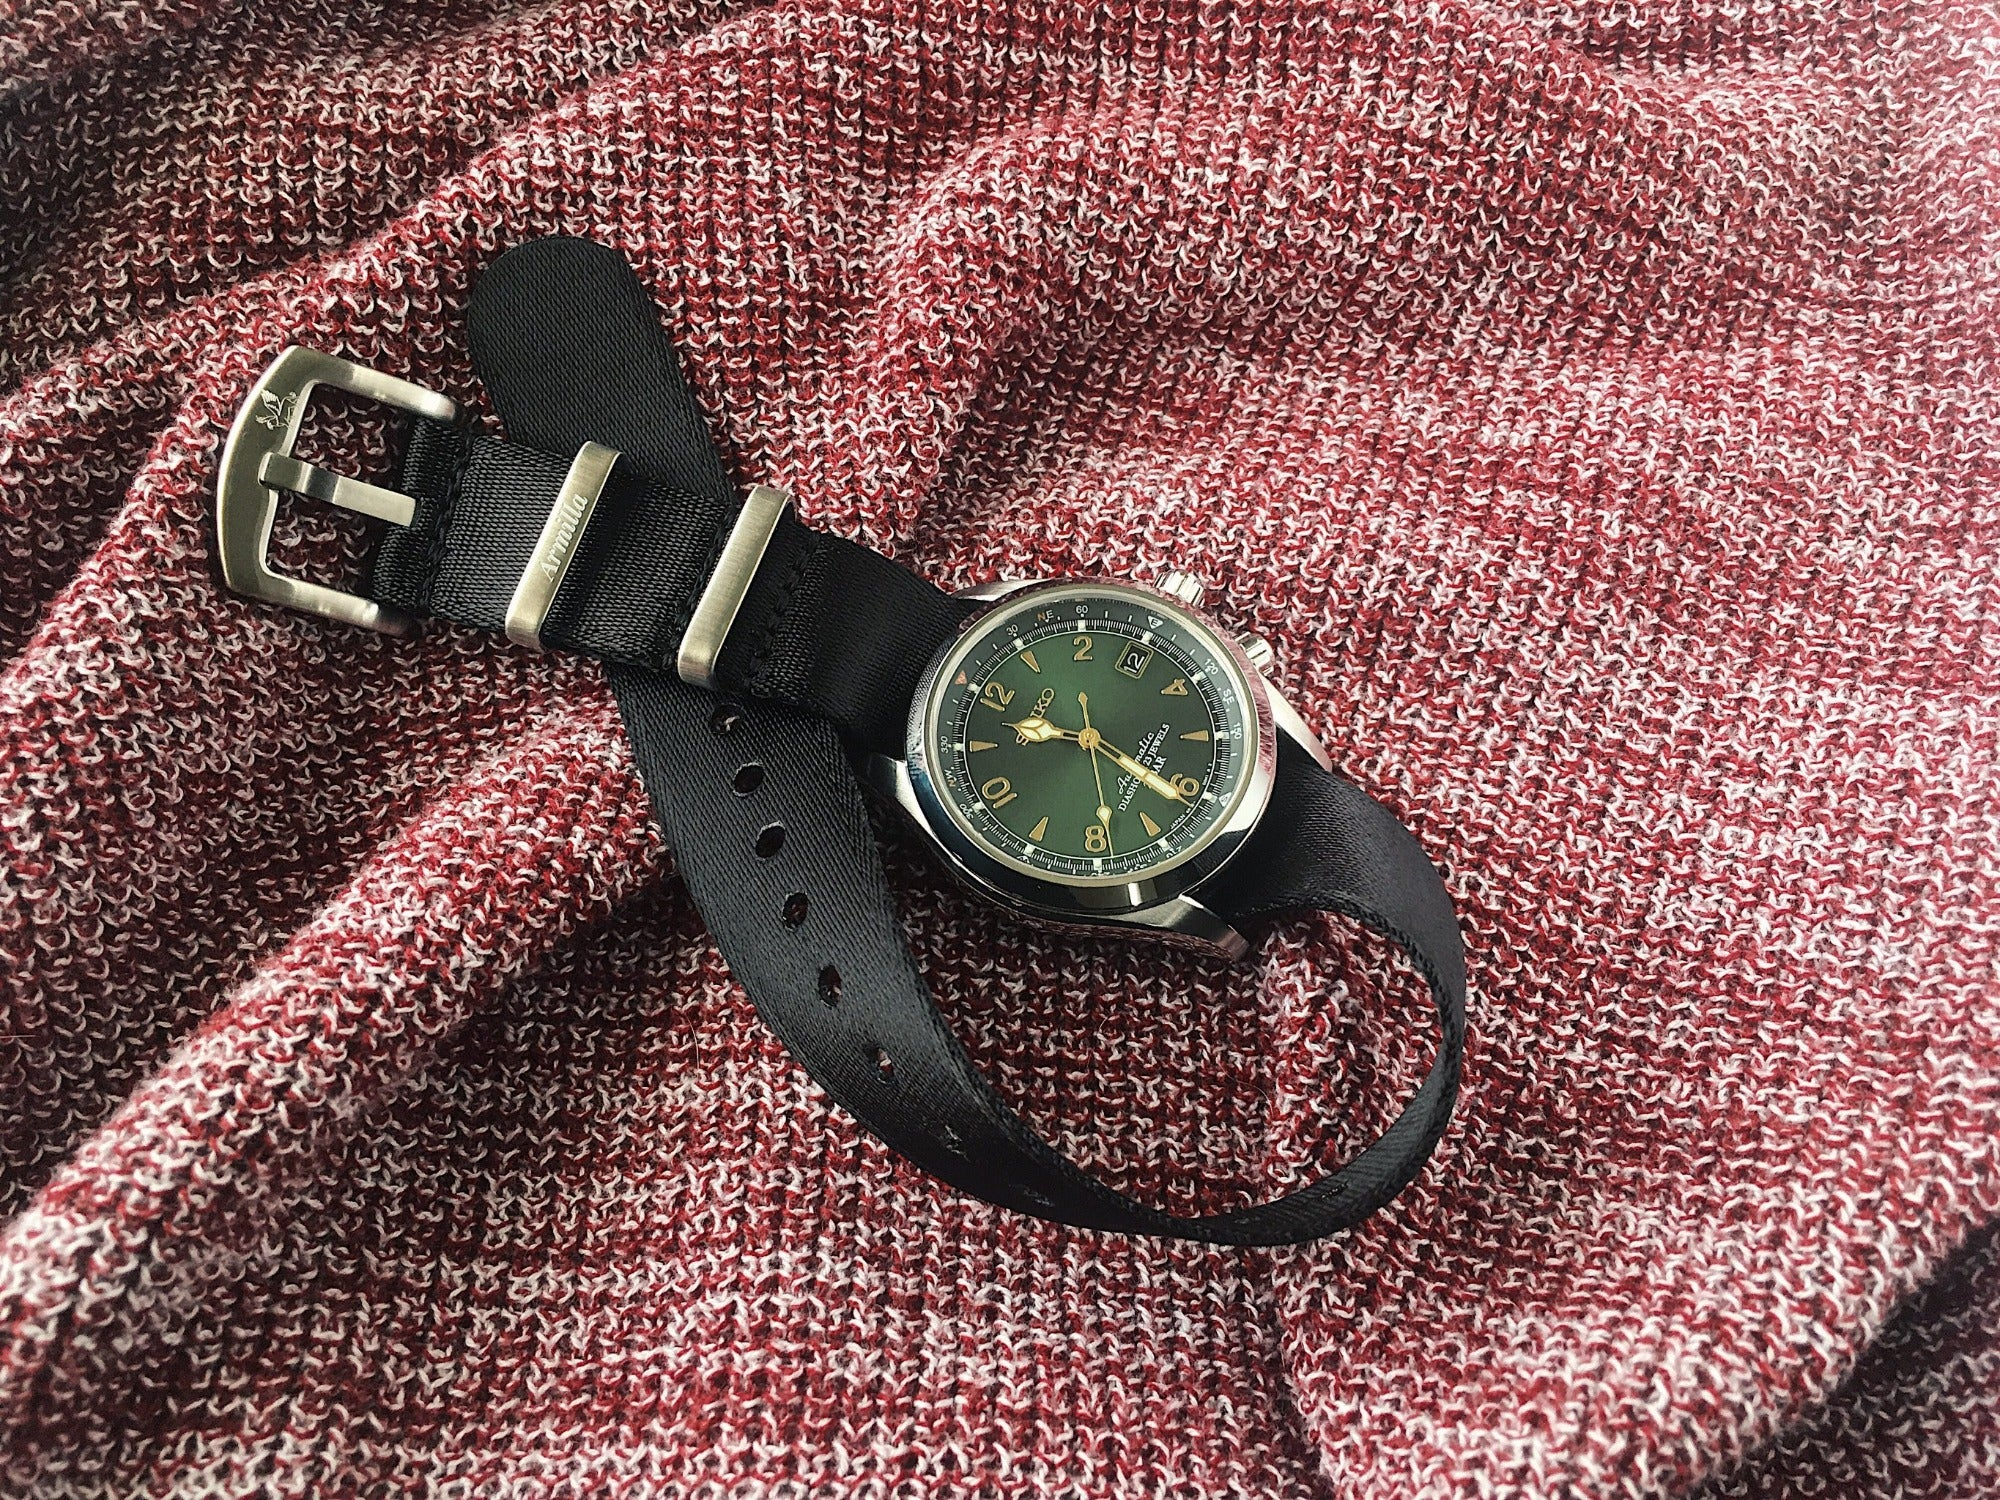 Seiko Alpinist Sarb017 on Armilla Slim Black NATO Watch Strap / Band